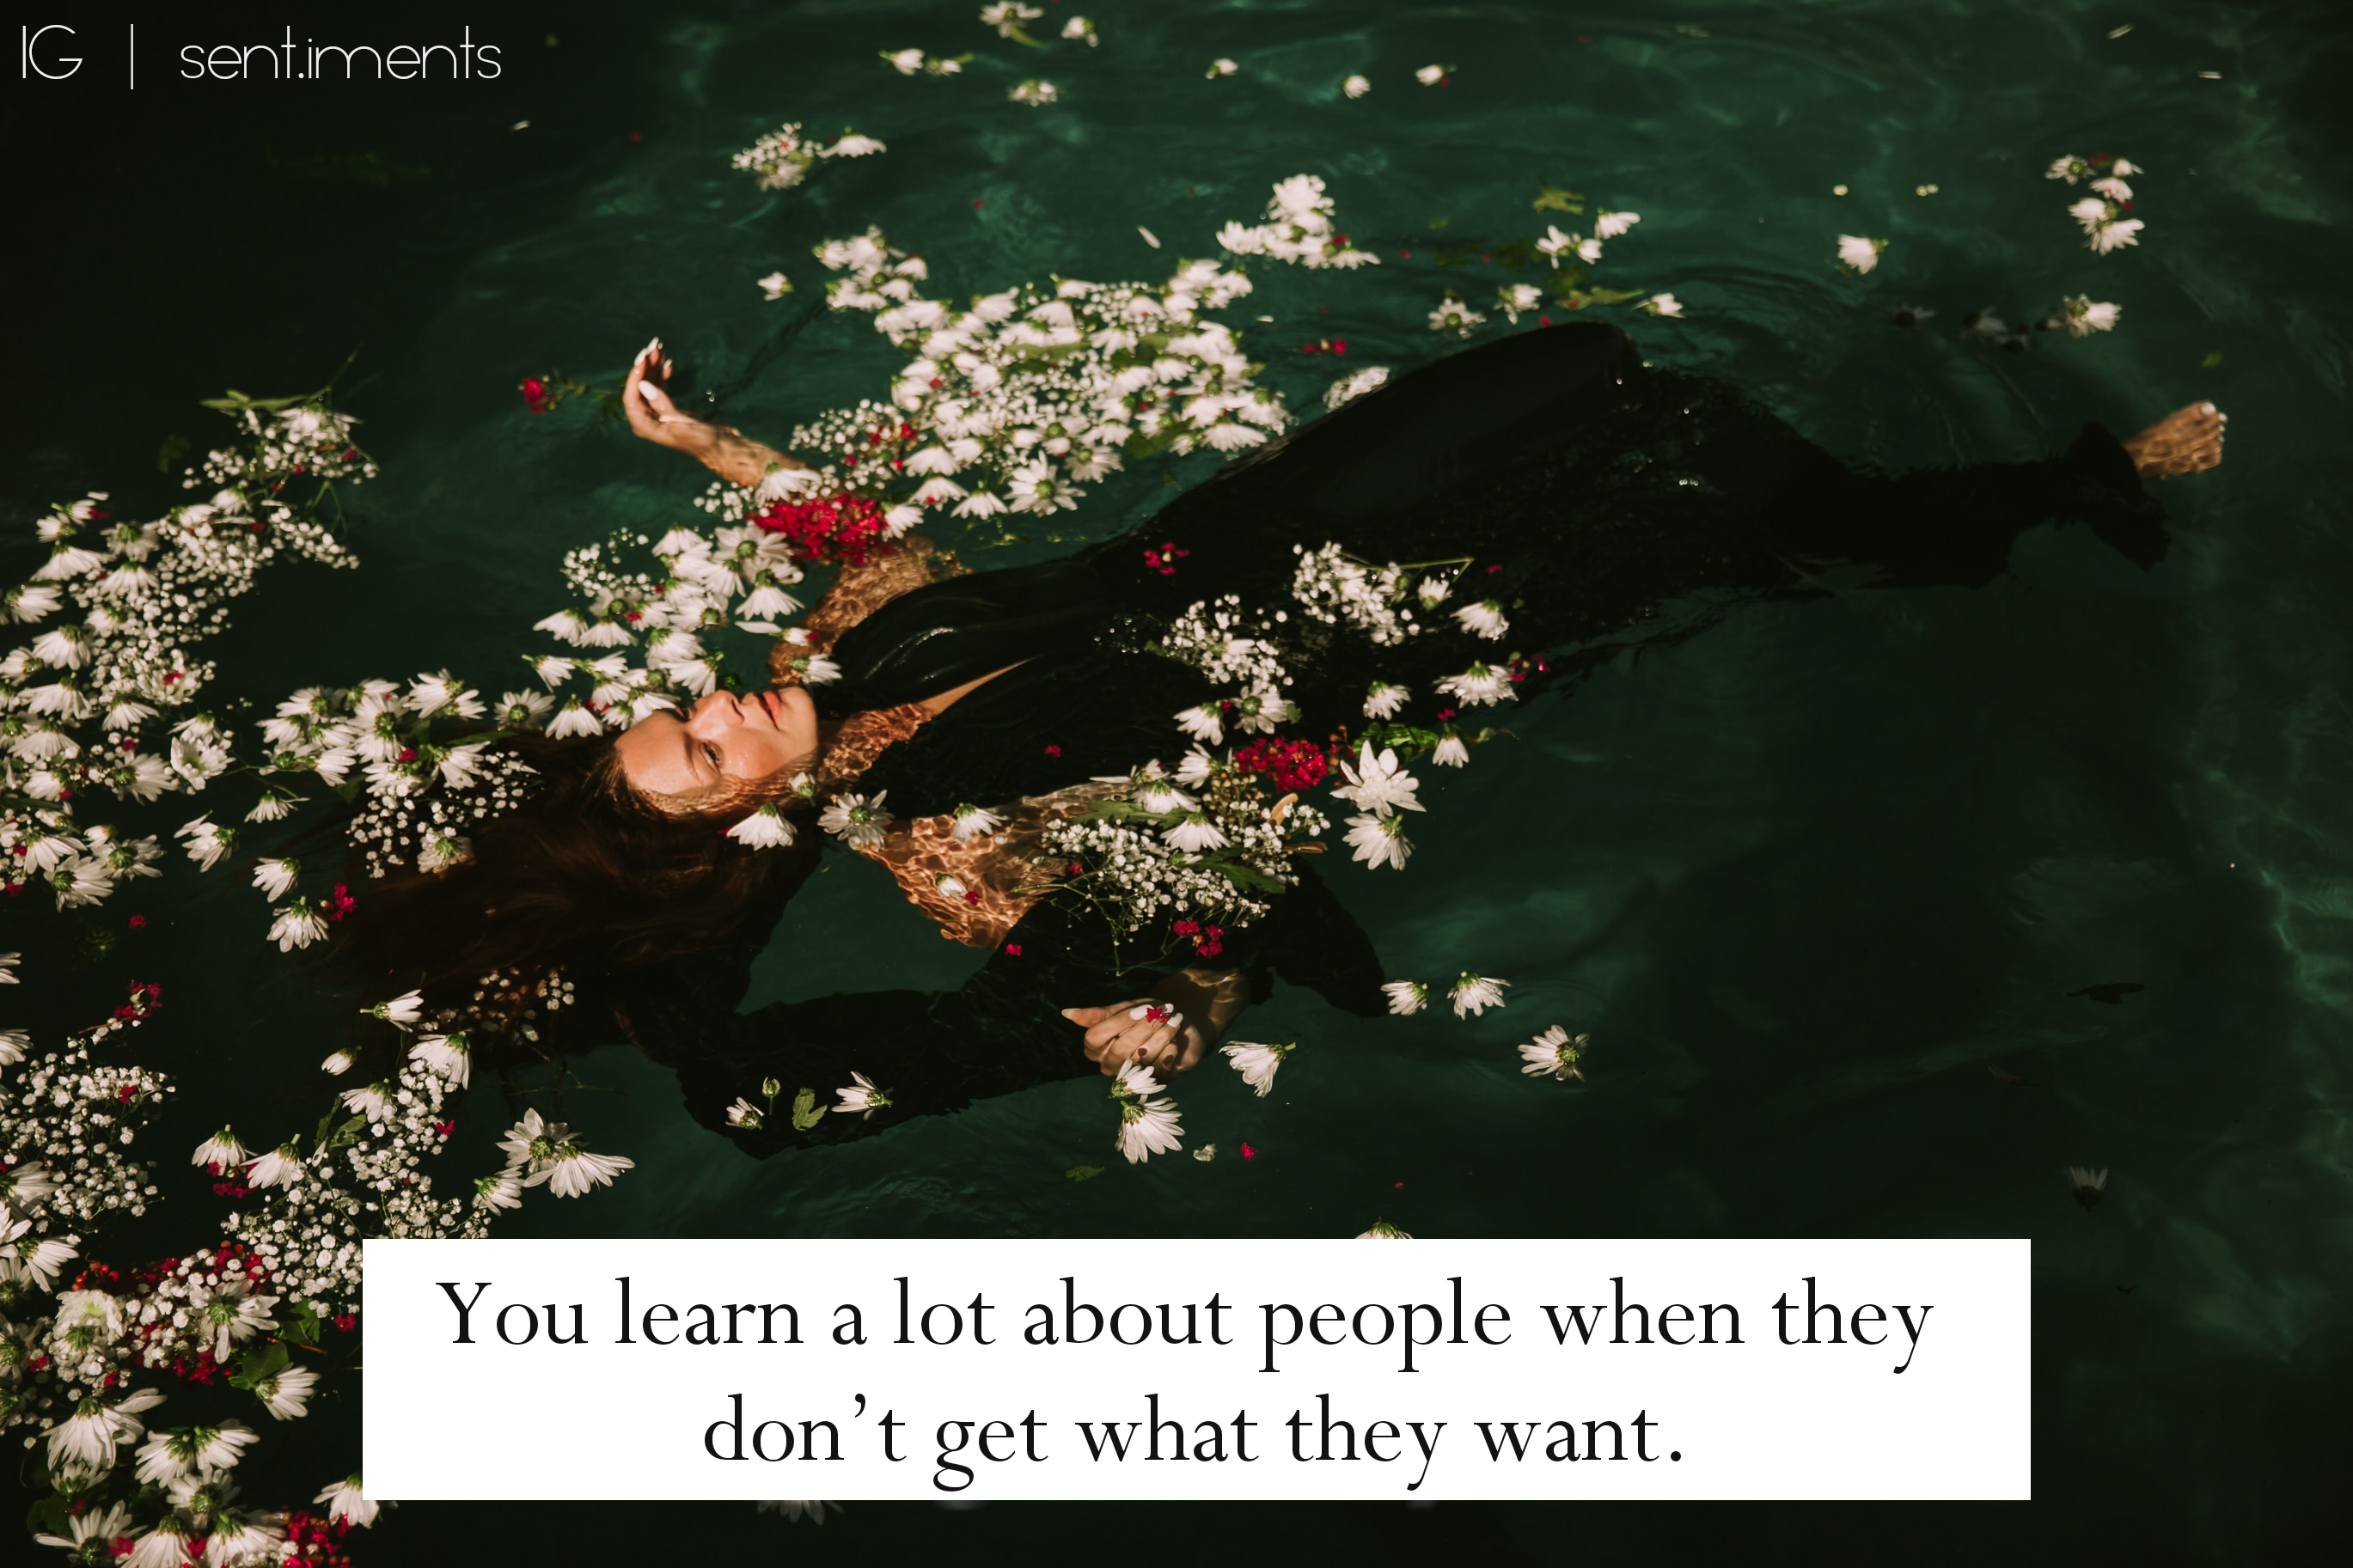 """You learn a lot about people when they don't get what they want."" by Unknown [2738 X 1825]"